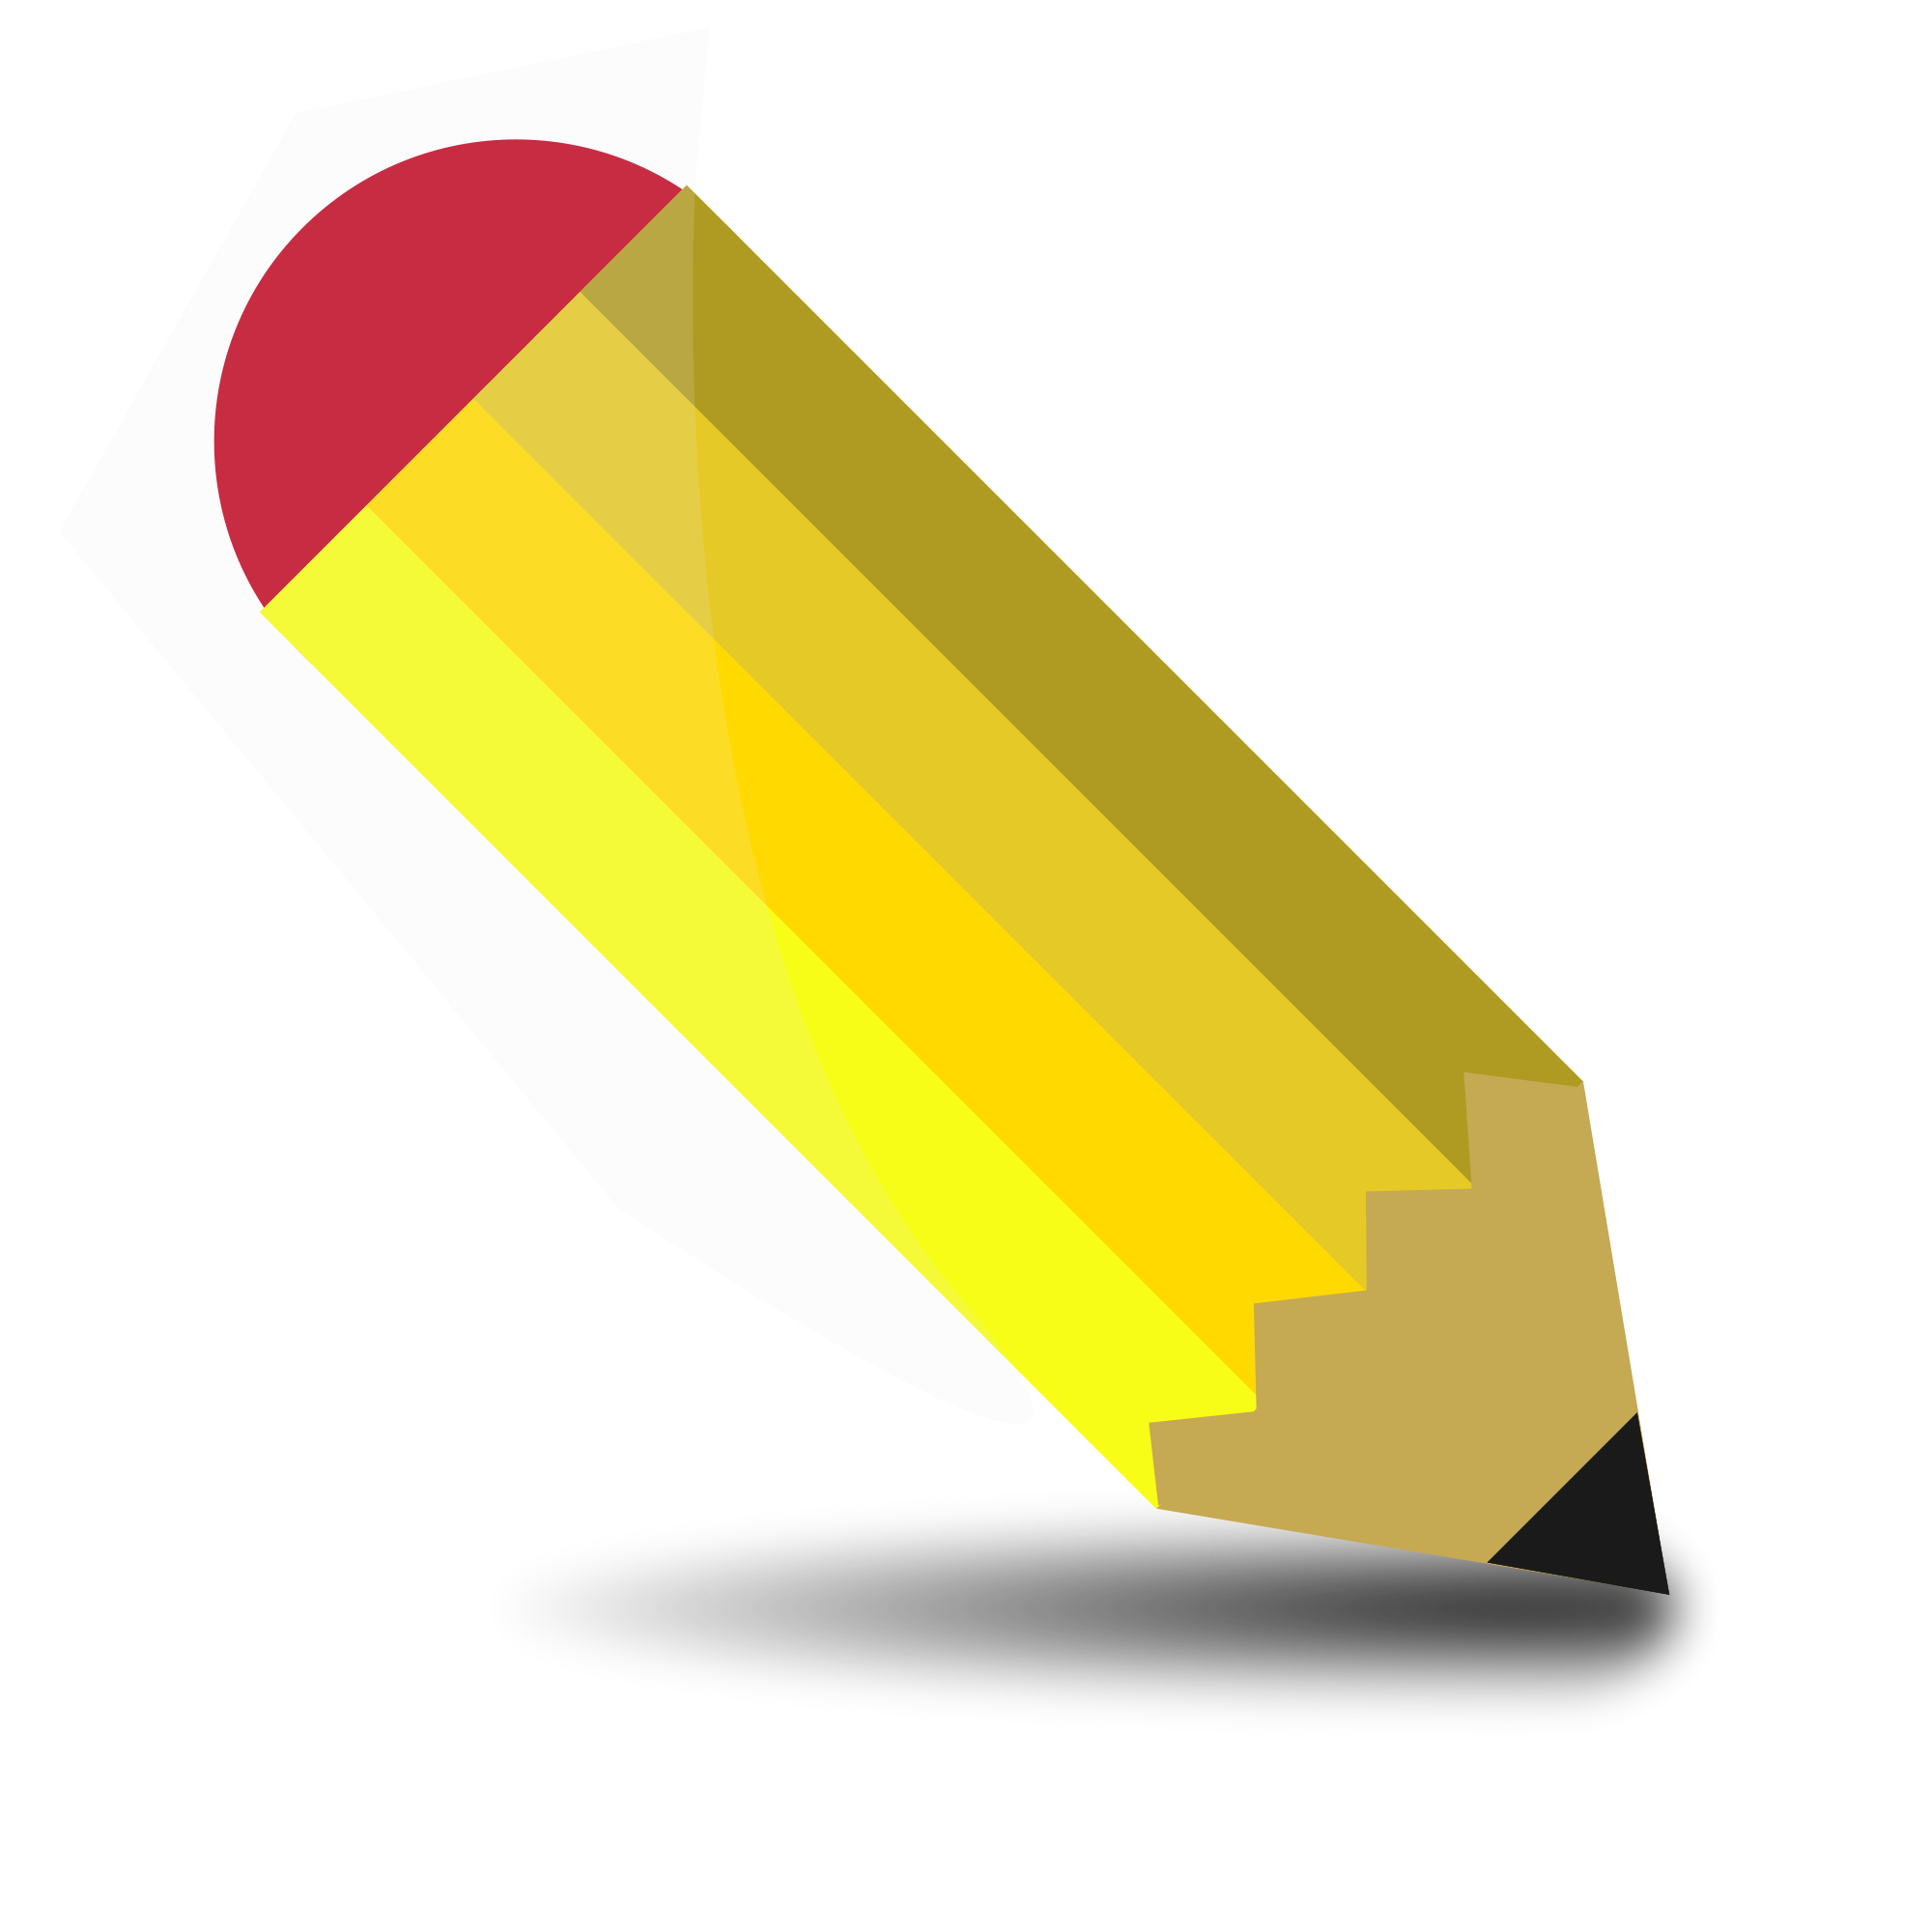 Pencil clipart. File svg wikimedia commons